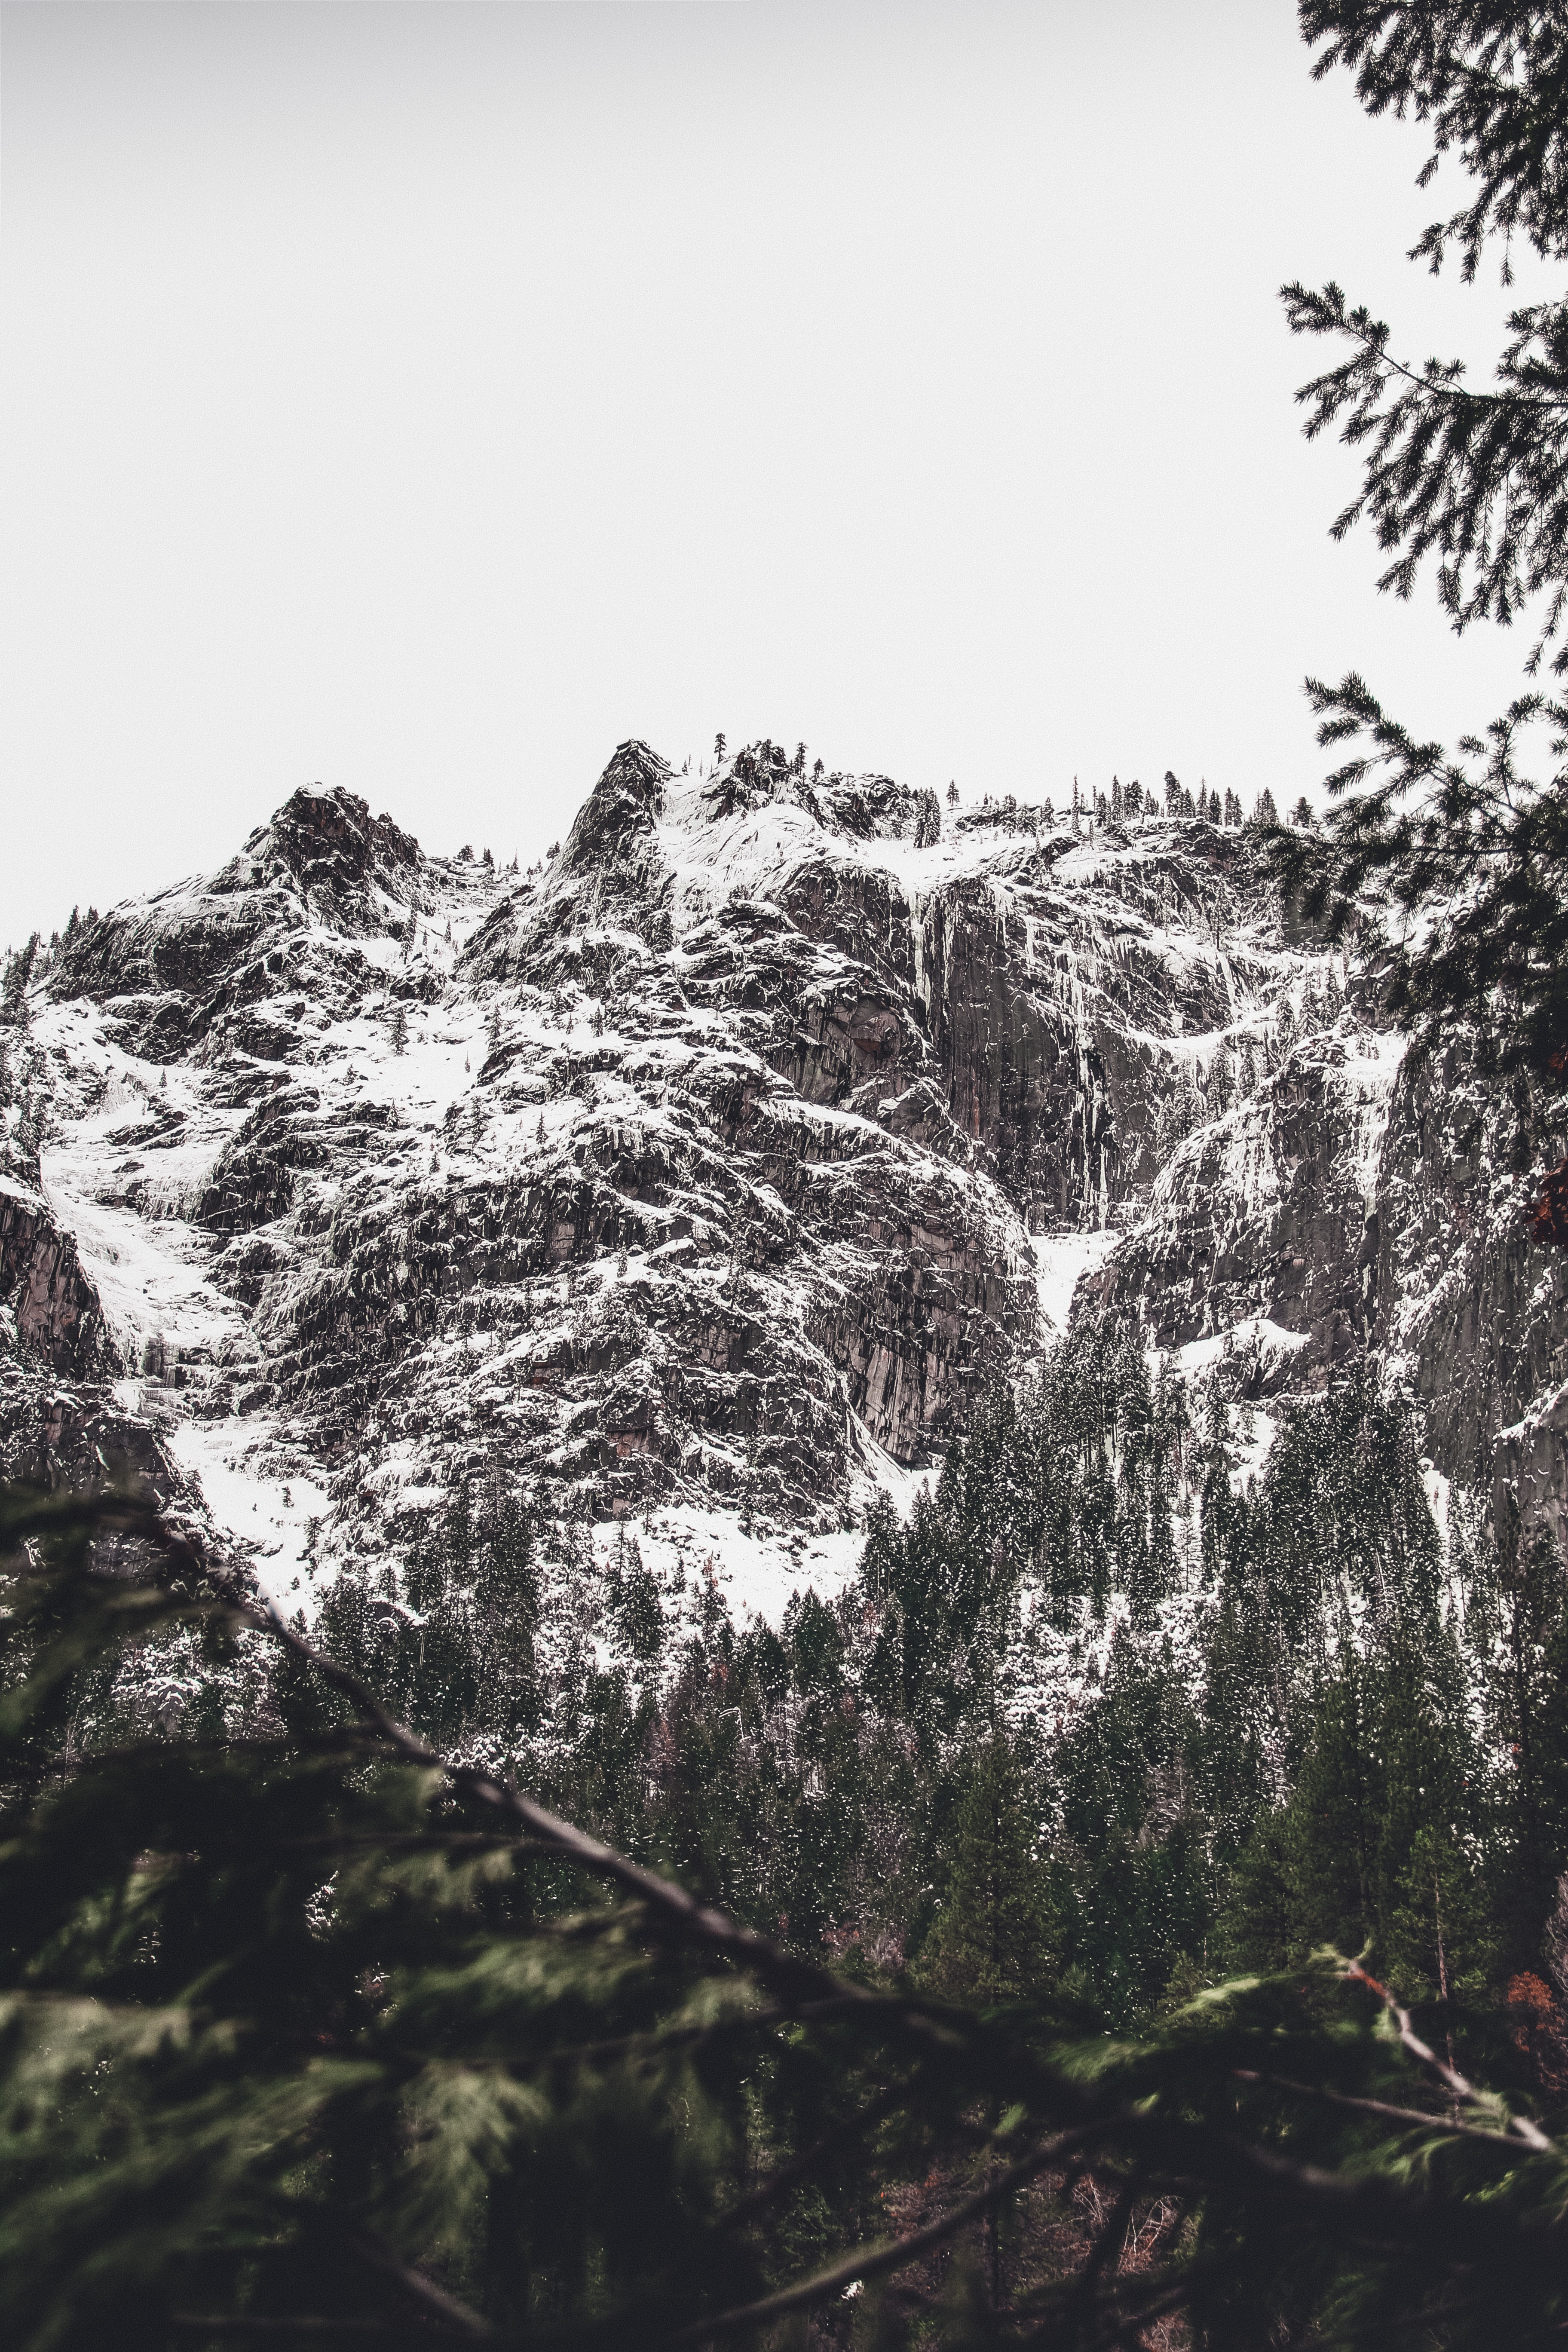 mountain covered with snow during daytime